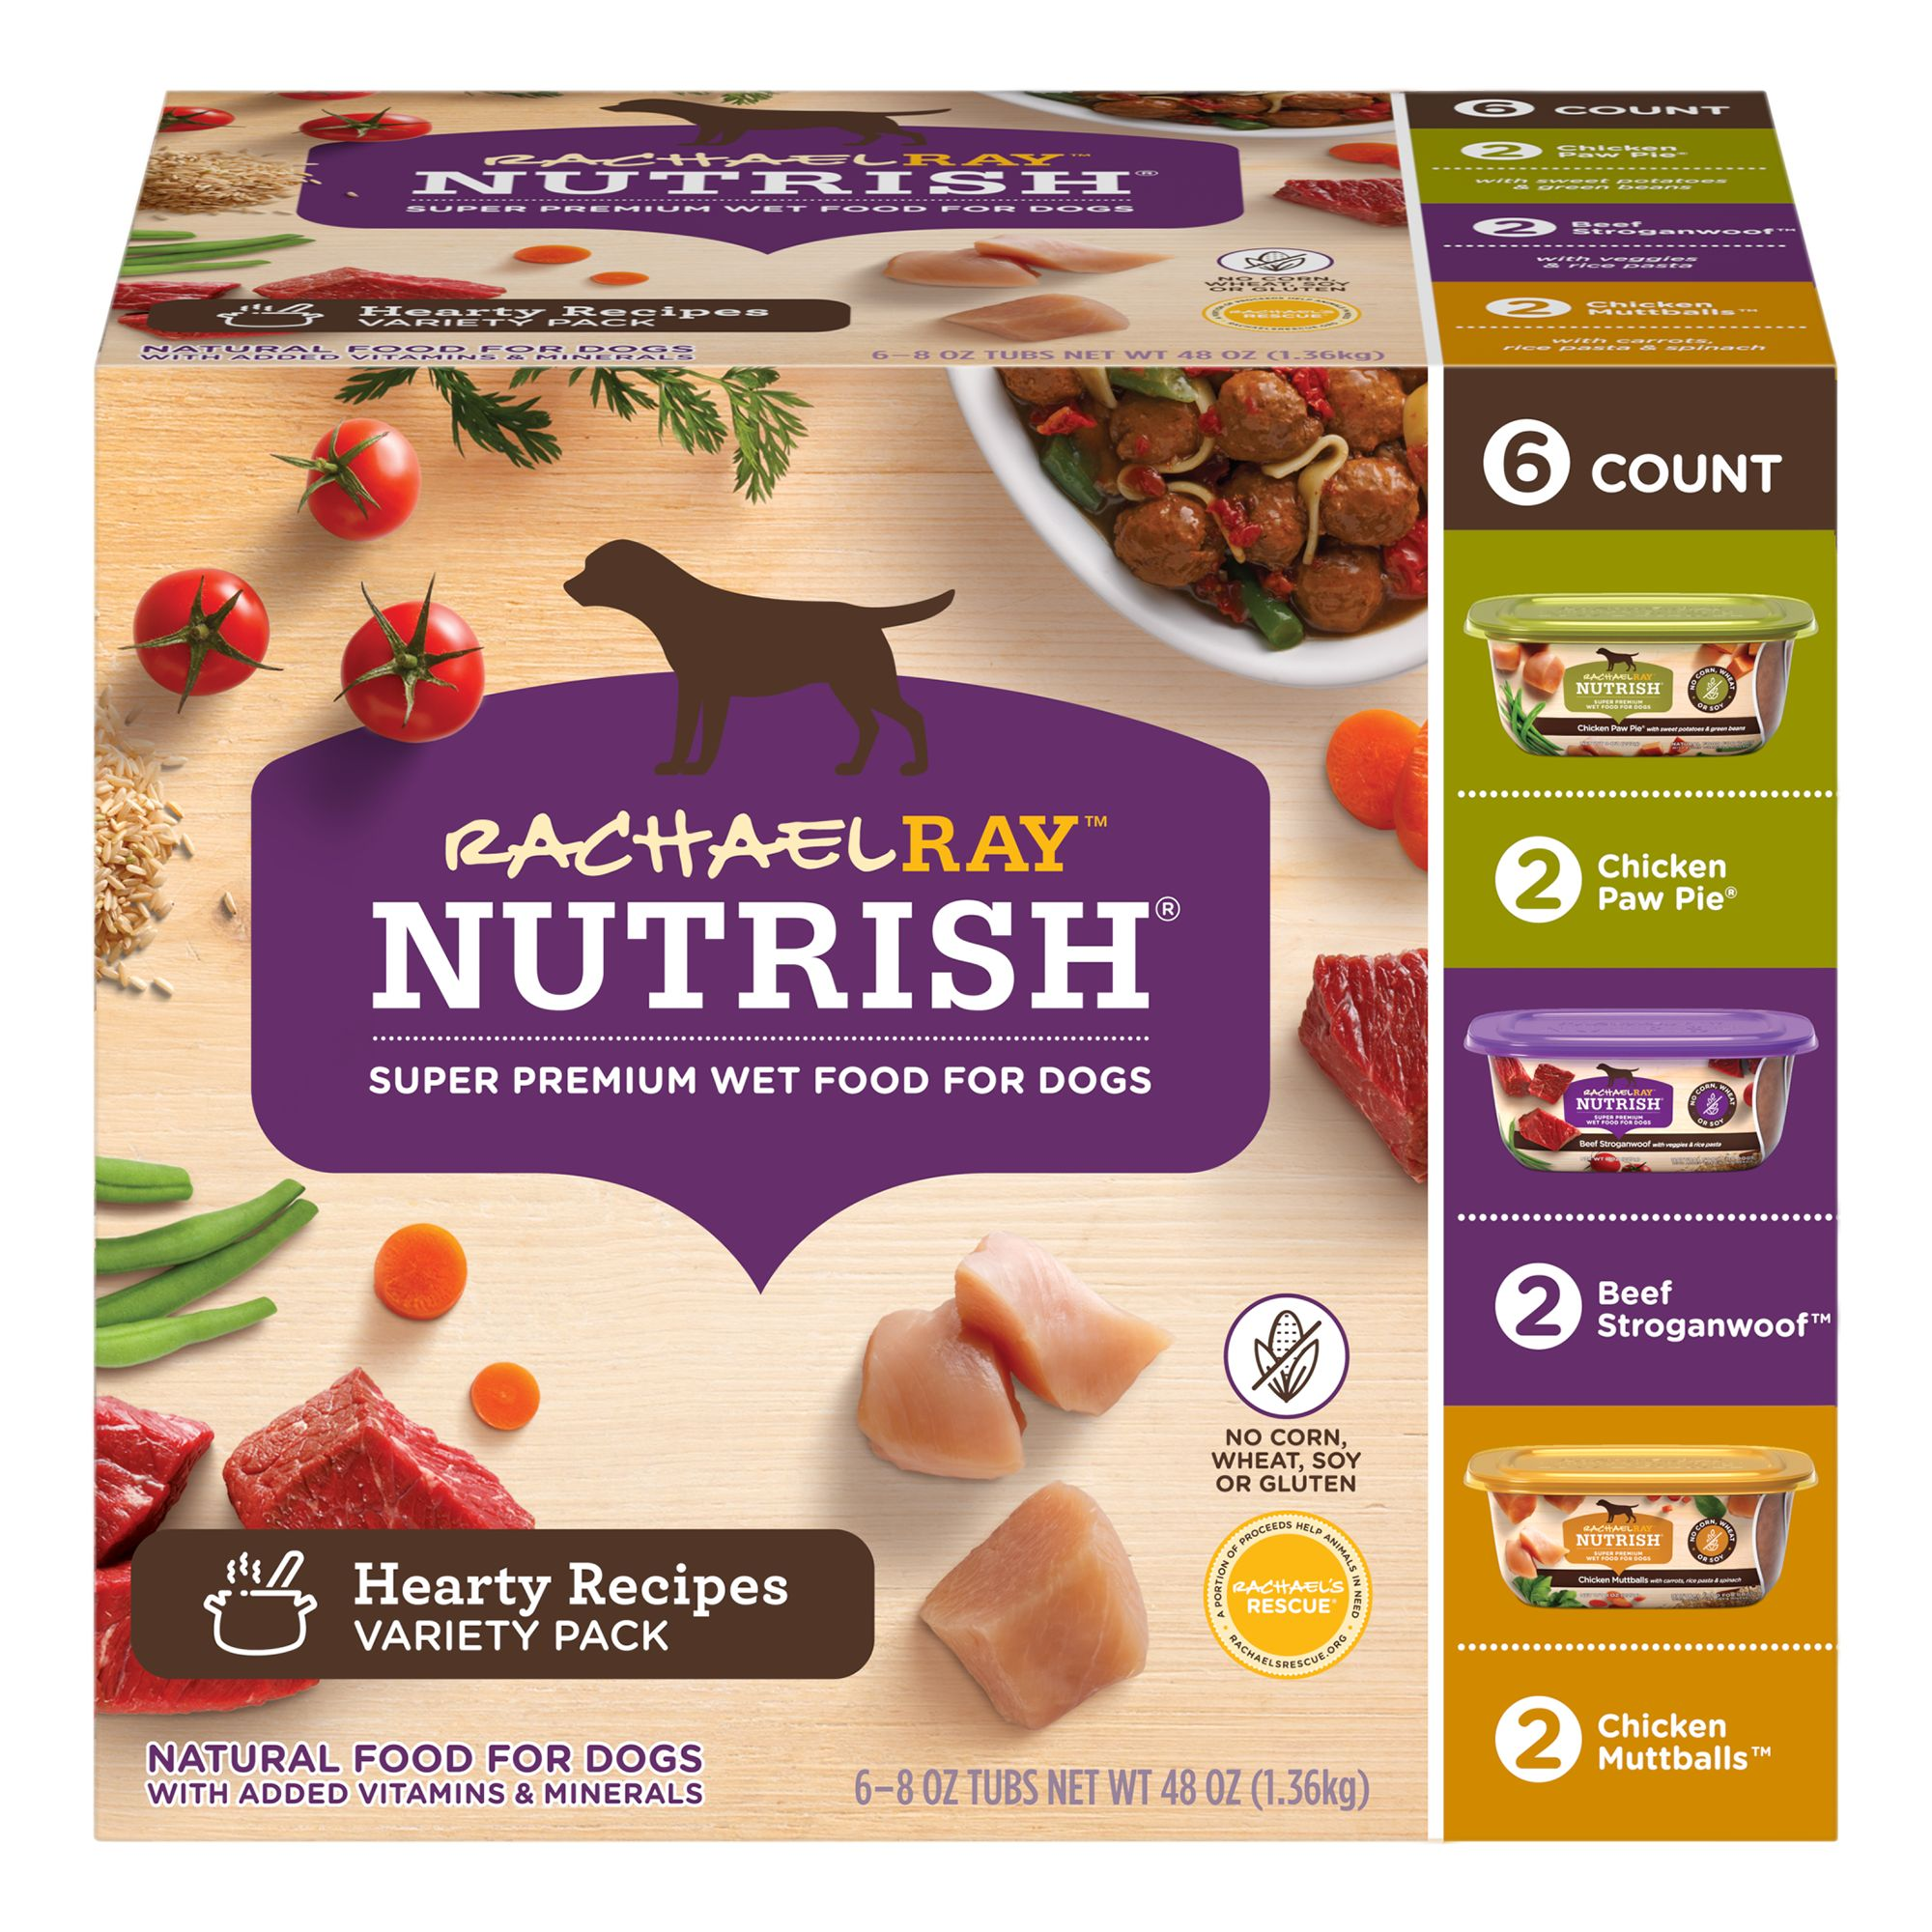 Rachael Ray Nutrish Wet Dog Food Dog Food Natural Hearty Recipes Variety Pack